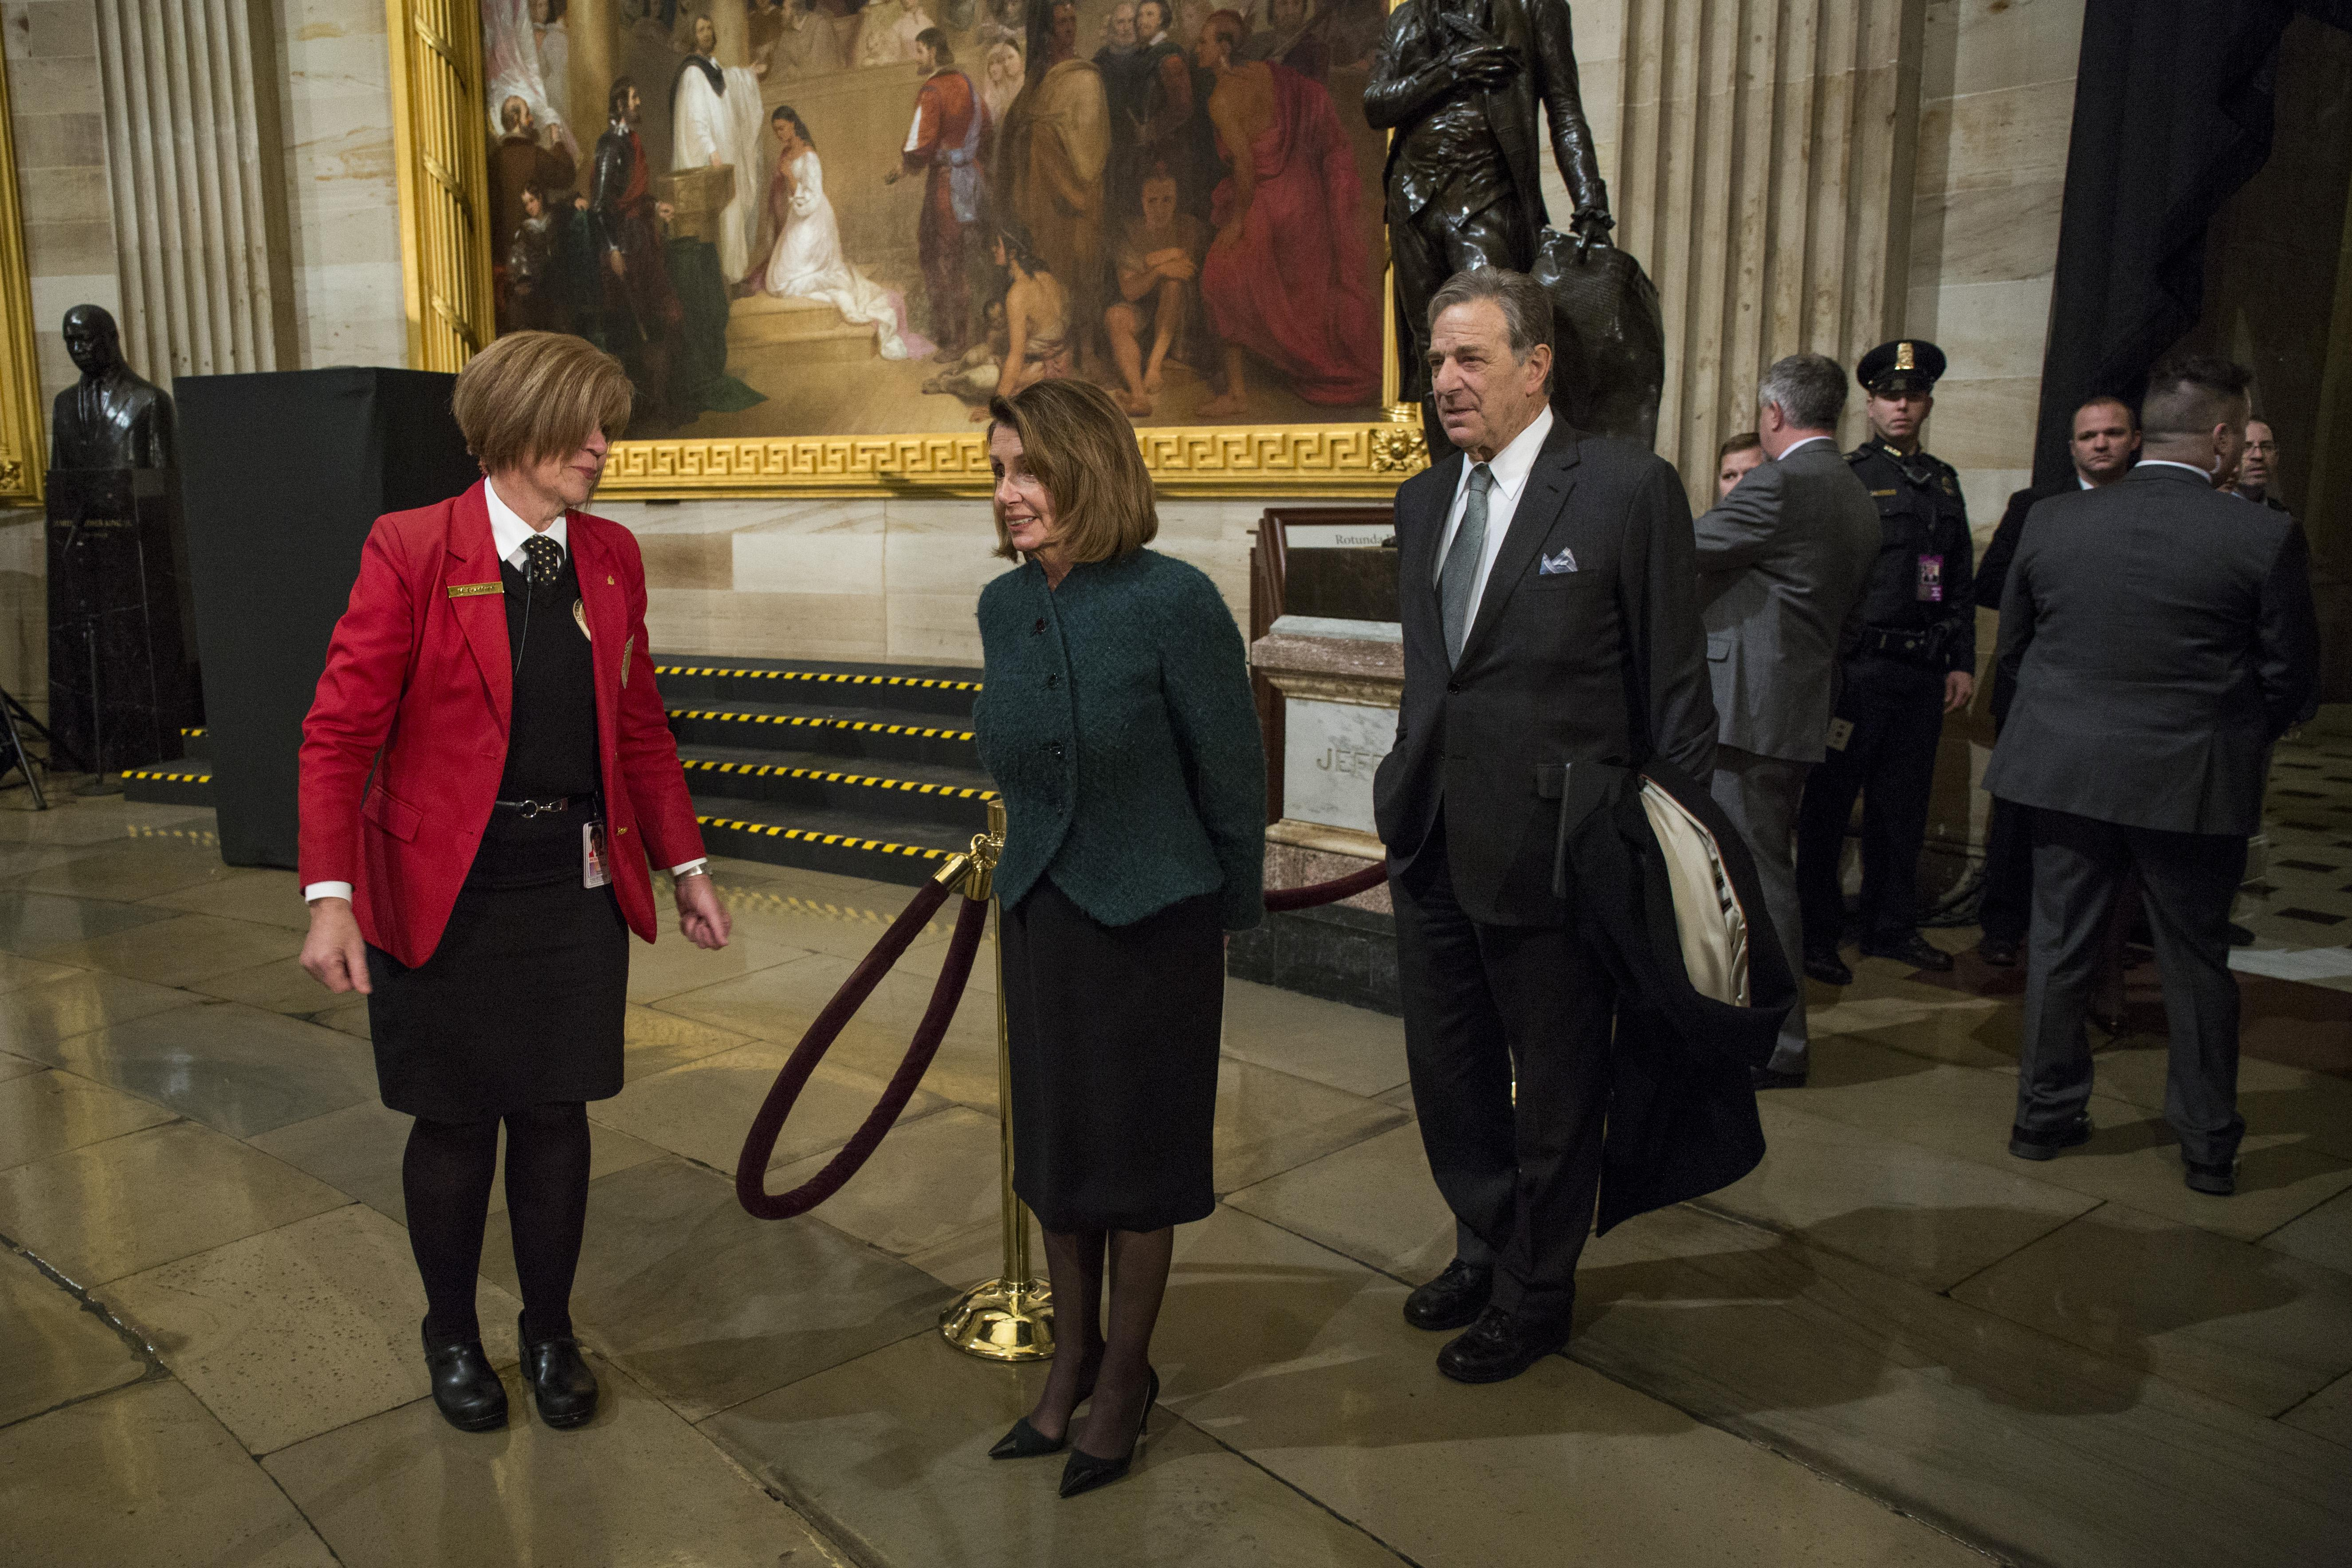 House Minority Leader Nancy Pelosi visits the Capitol Rotunda as former U.S. President George H.W. Bush lies in state on Monday in D.C.